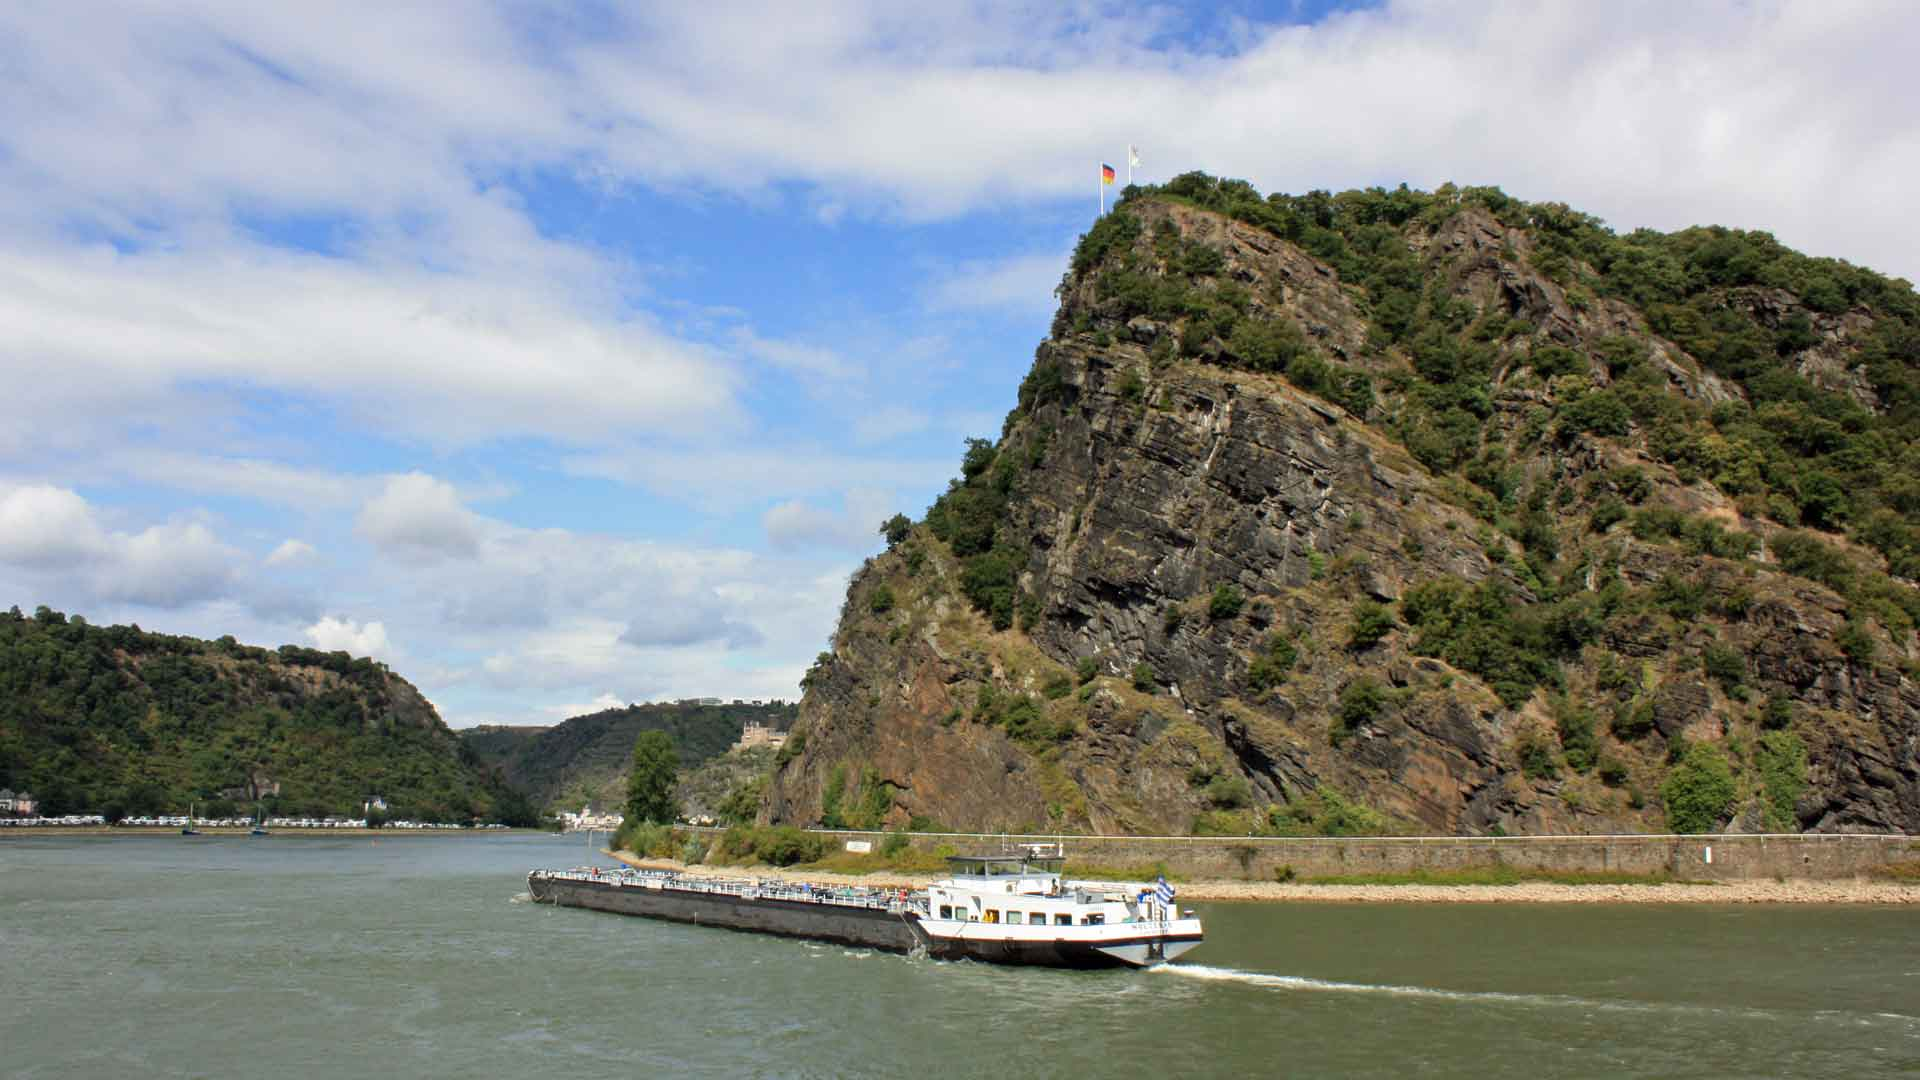 De Loreley